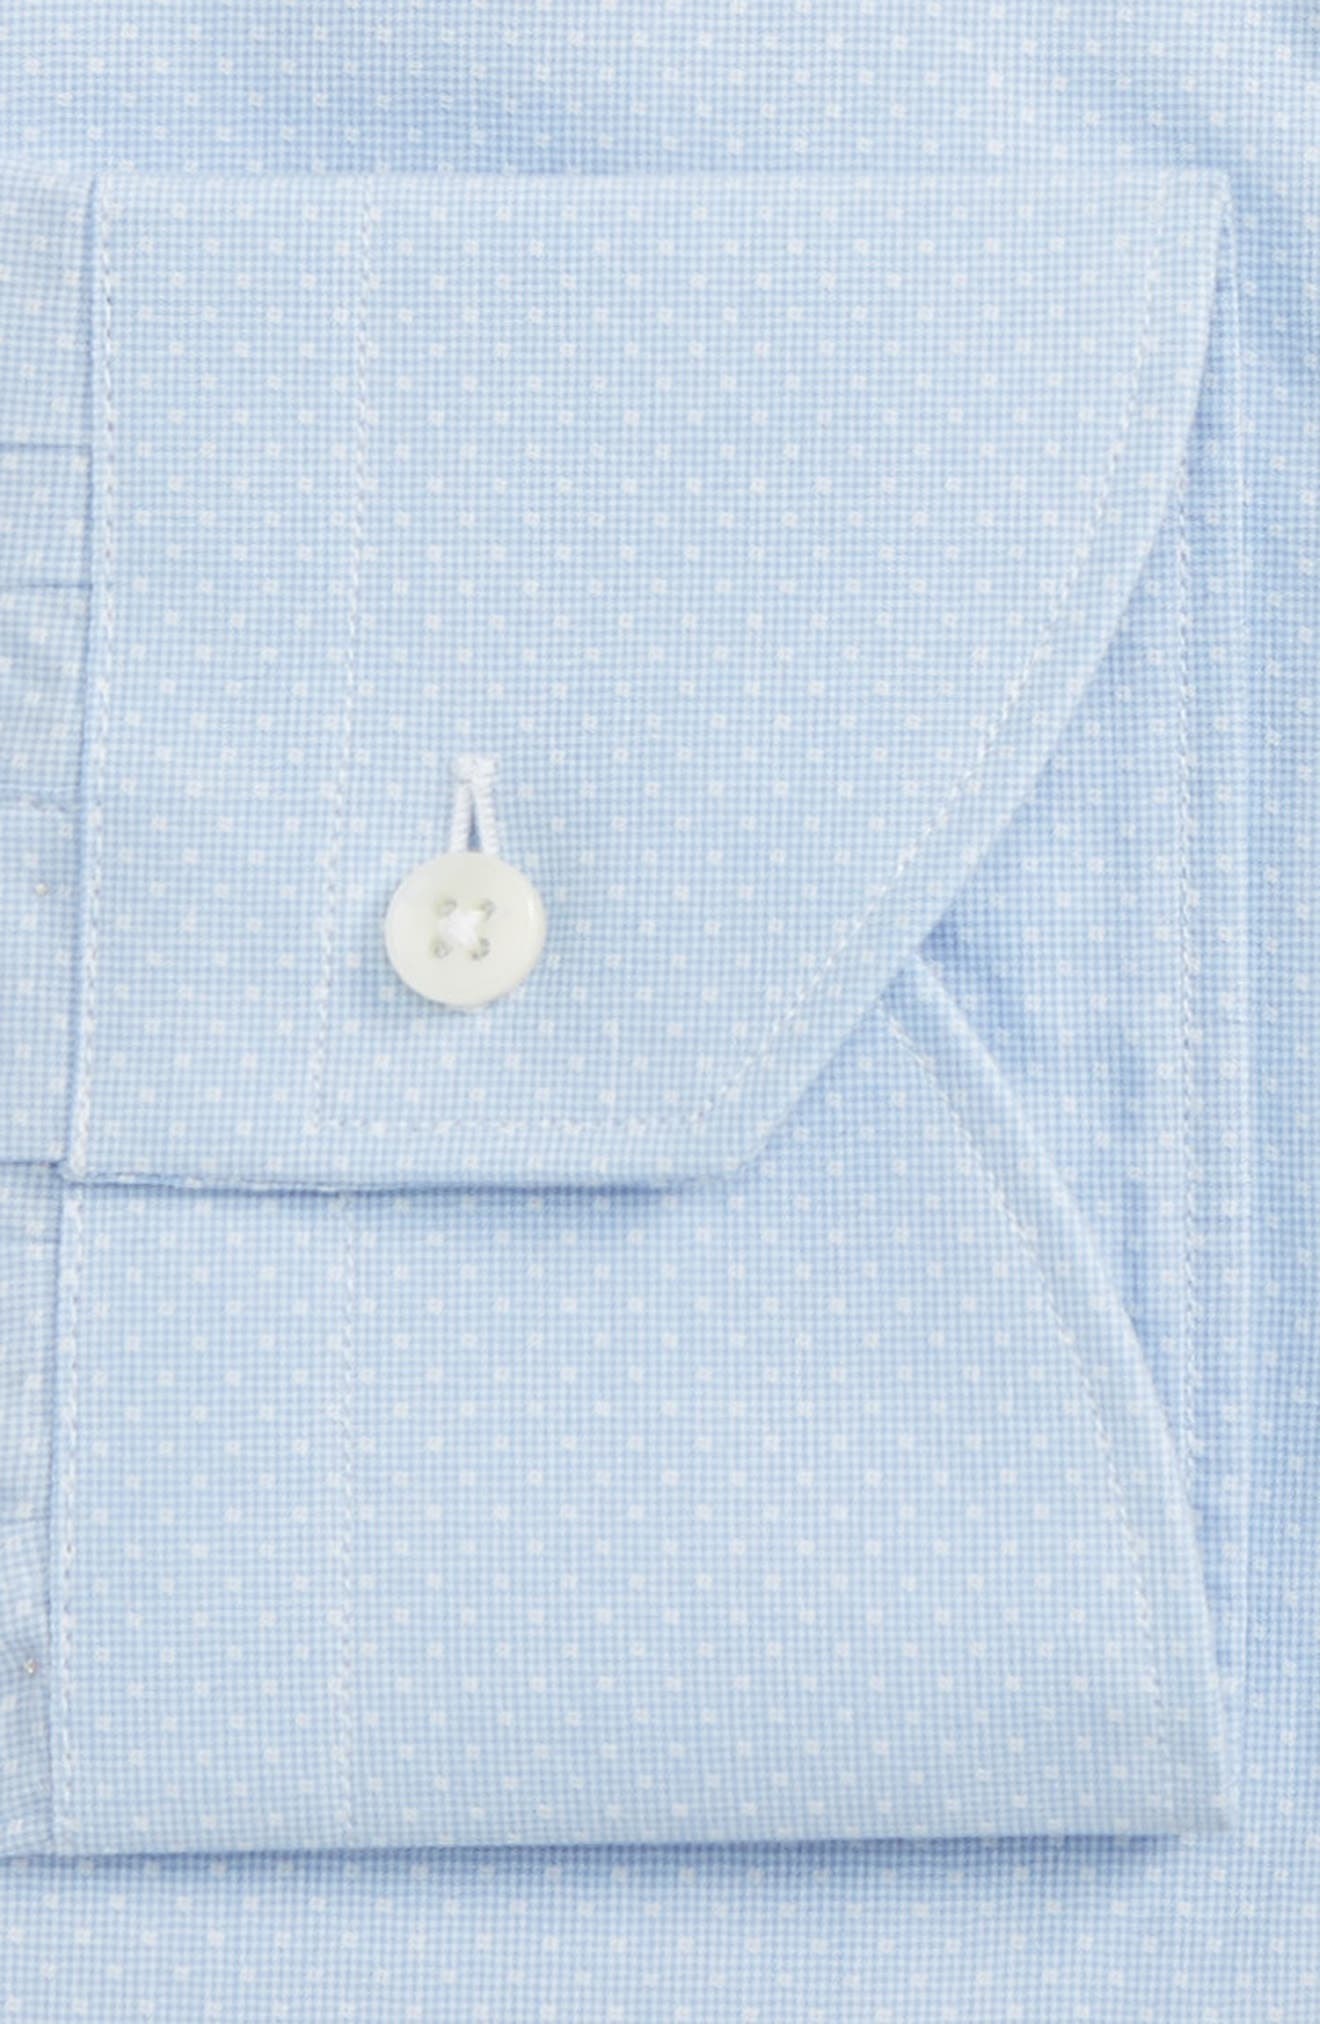 Regular Fit Check Dress Shirt,                             Alternate thumbnail 2, color,                             Light Blue